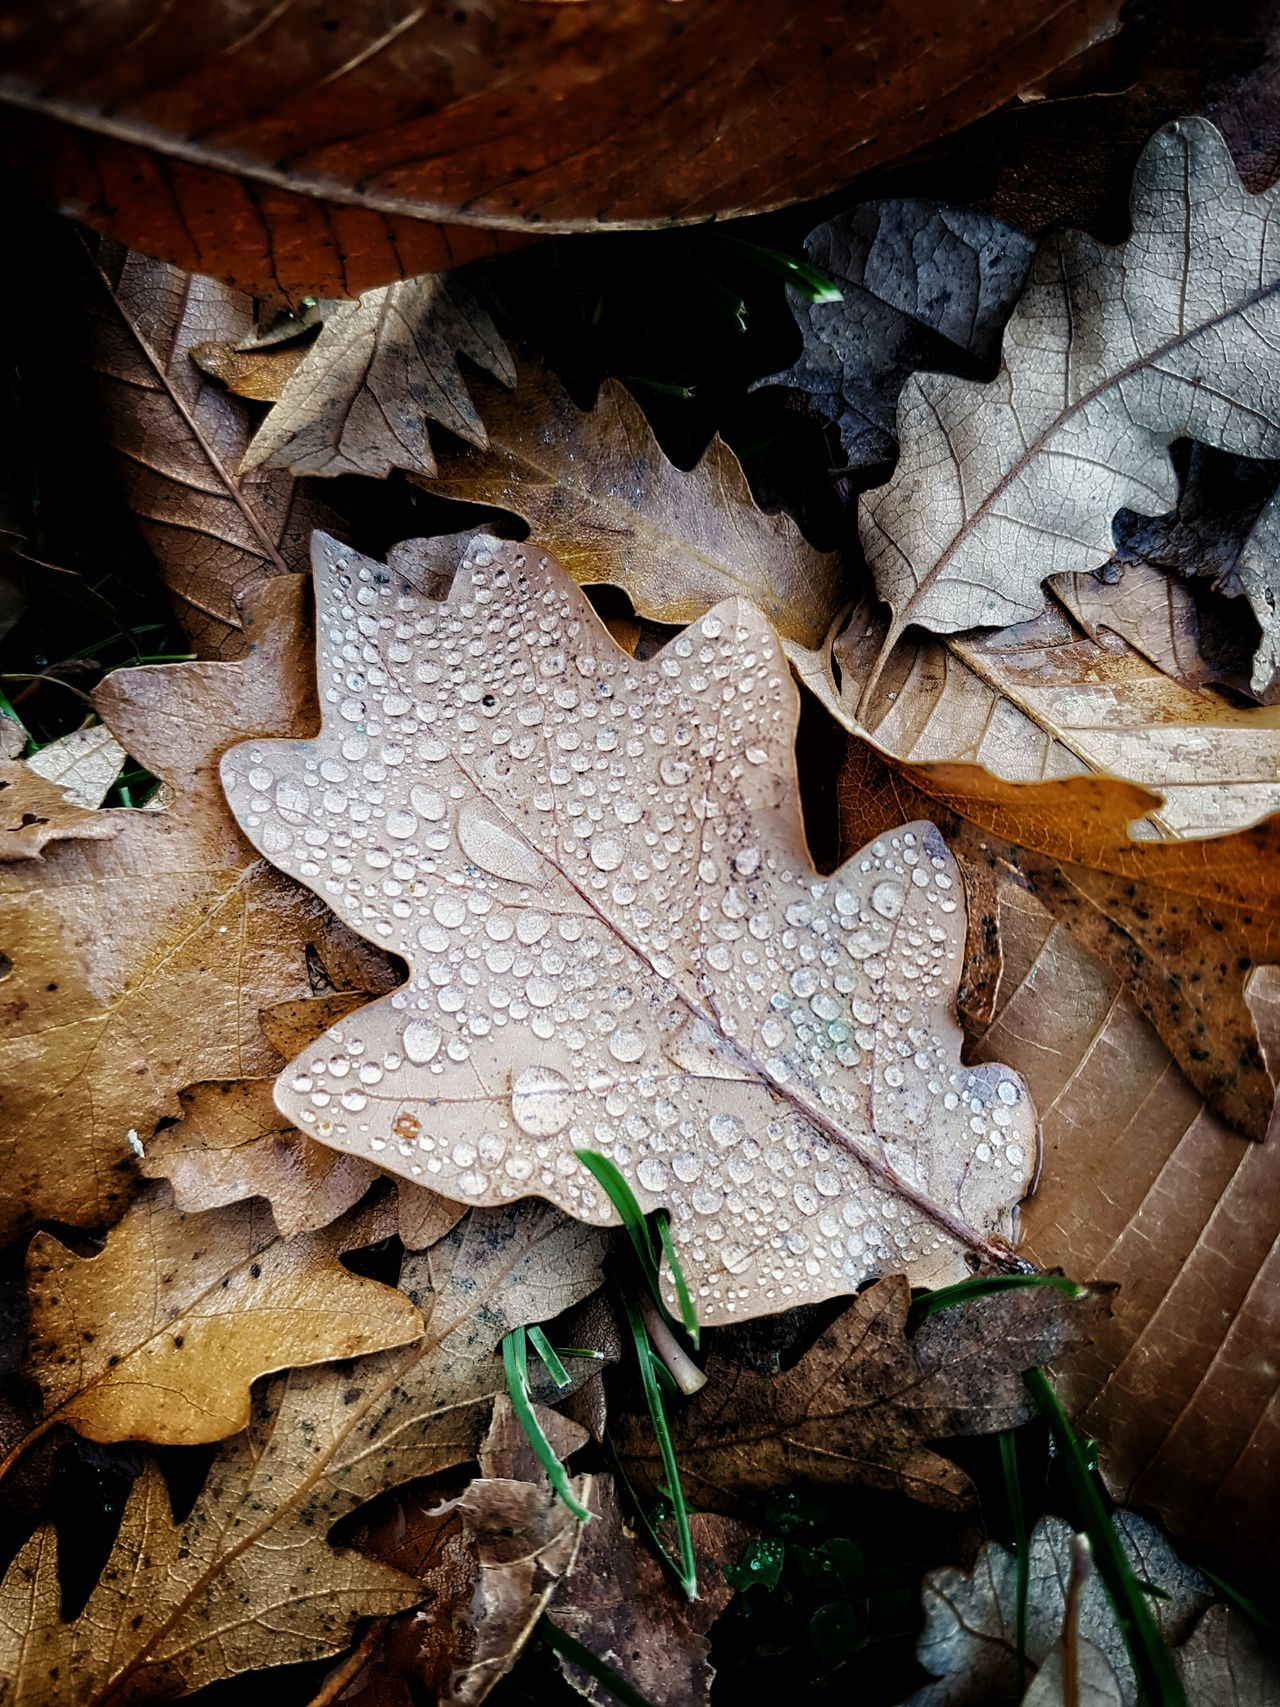 Leafs Leaf Close-up No People Nature Day Outdoors Autumn Autumn Leaves RainDrop Drops Macro Macro Photography Non-urban Scene Countryside Nature Photography EyeEm Best Shots EyeEmBestPics EyeEm Nature Lover EyeEm Gallery Leaf 🍂 Greenwich Park London